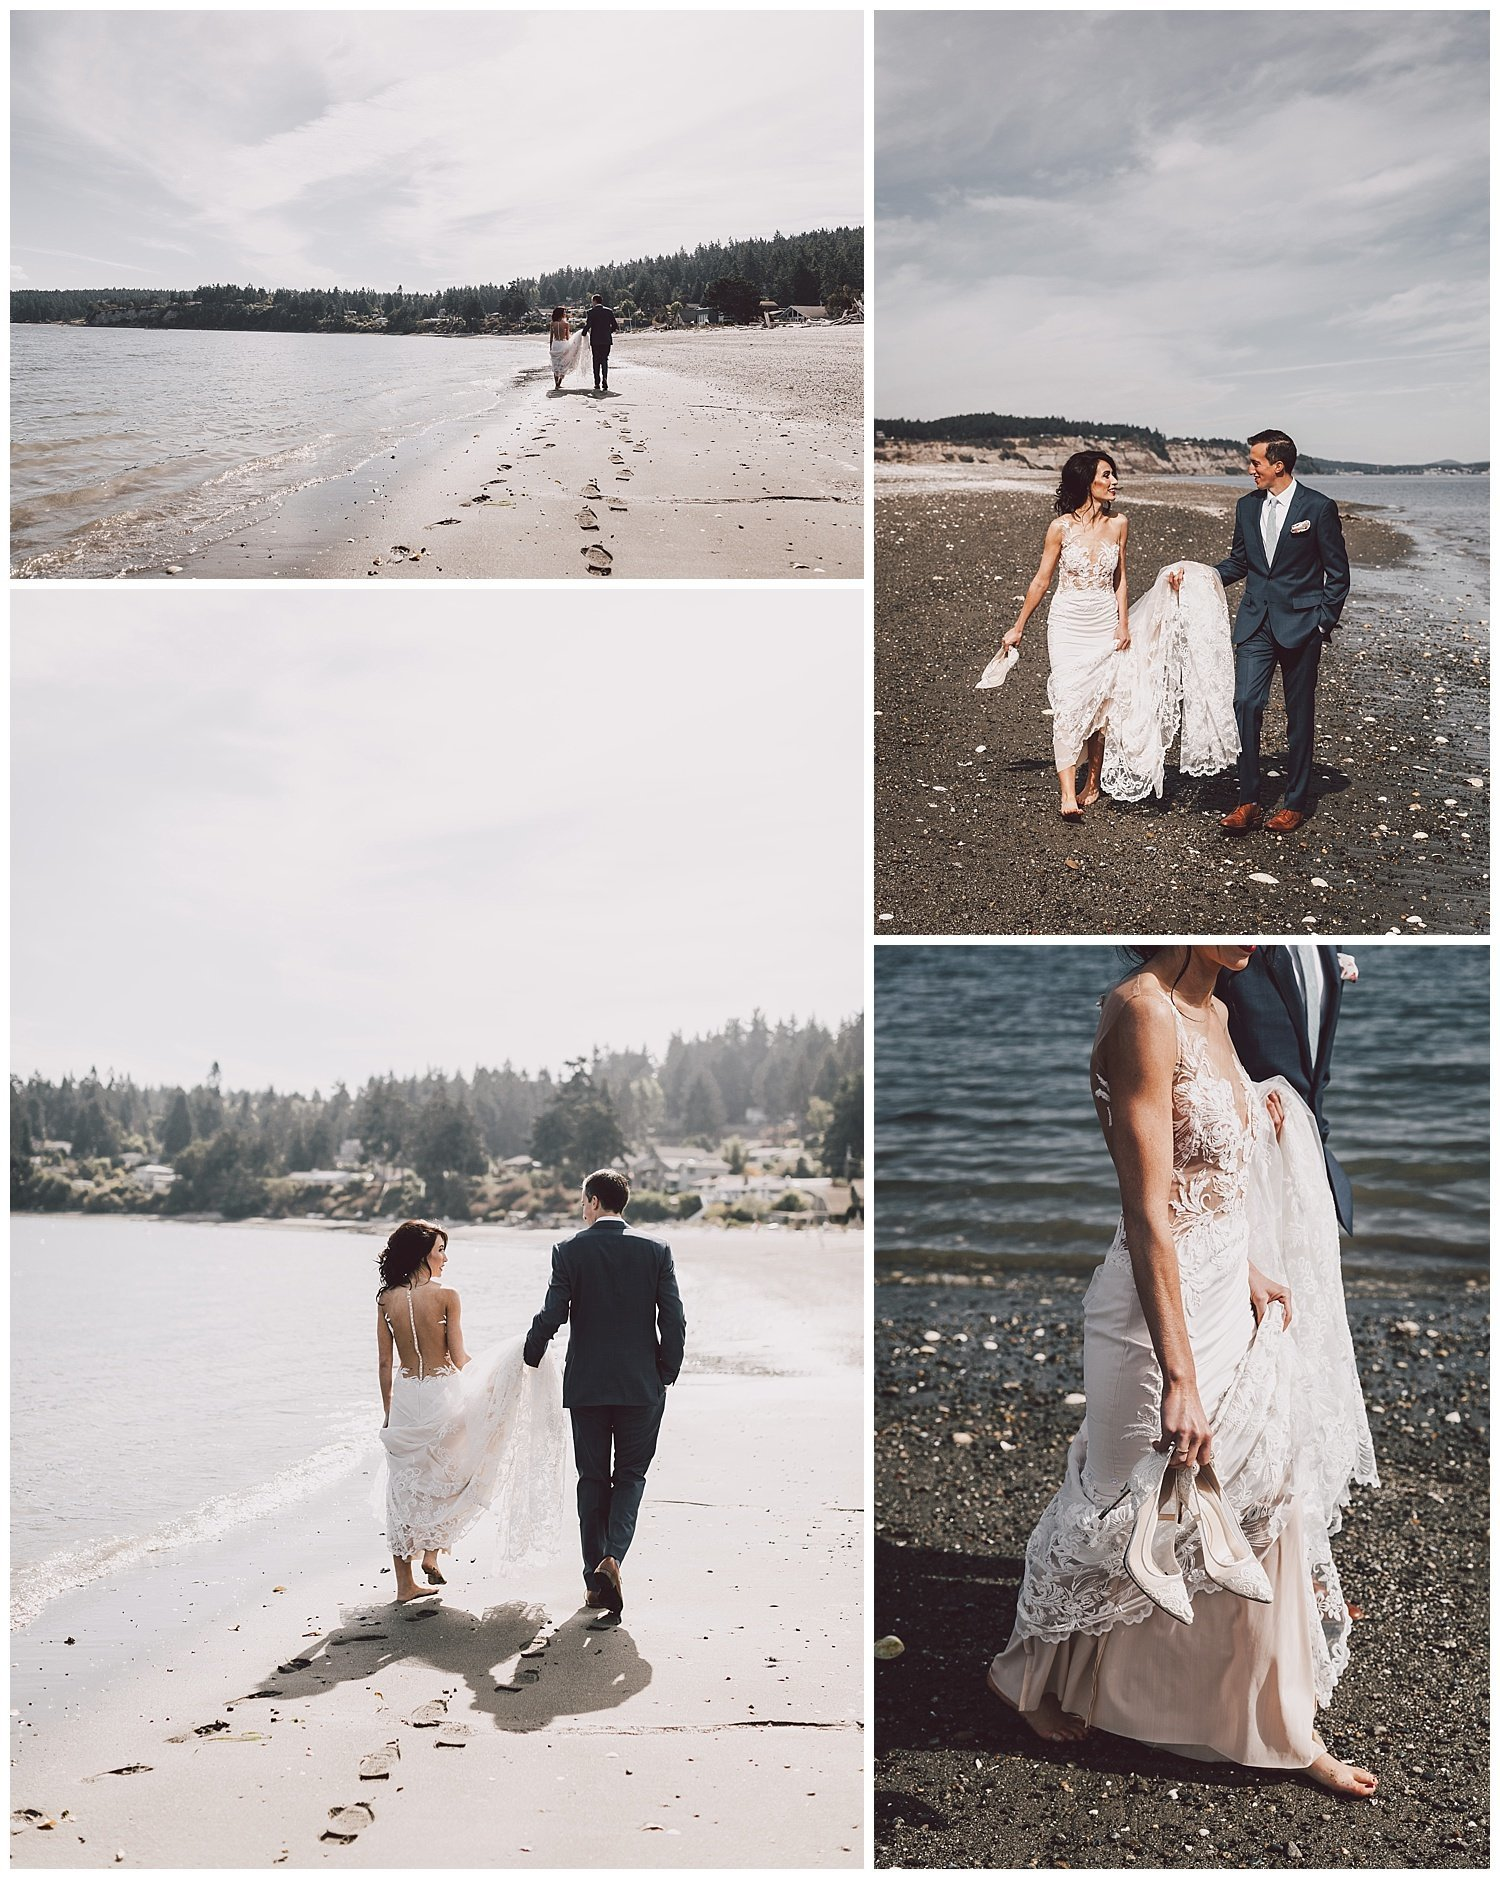 crockett-farm-wedding-whidbey-island-luma-weddings_0010